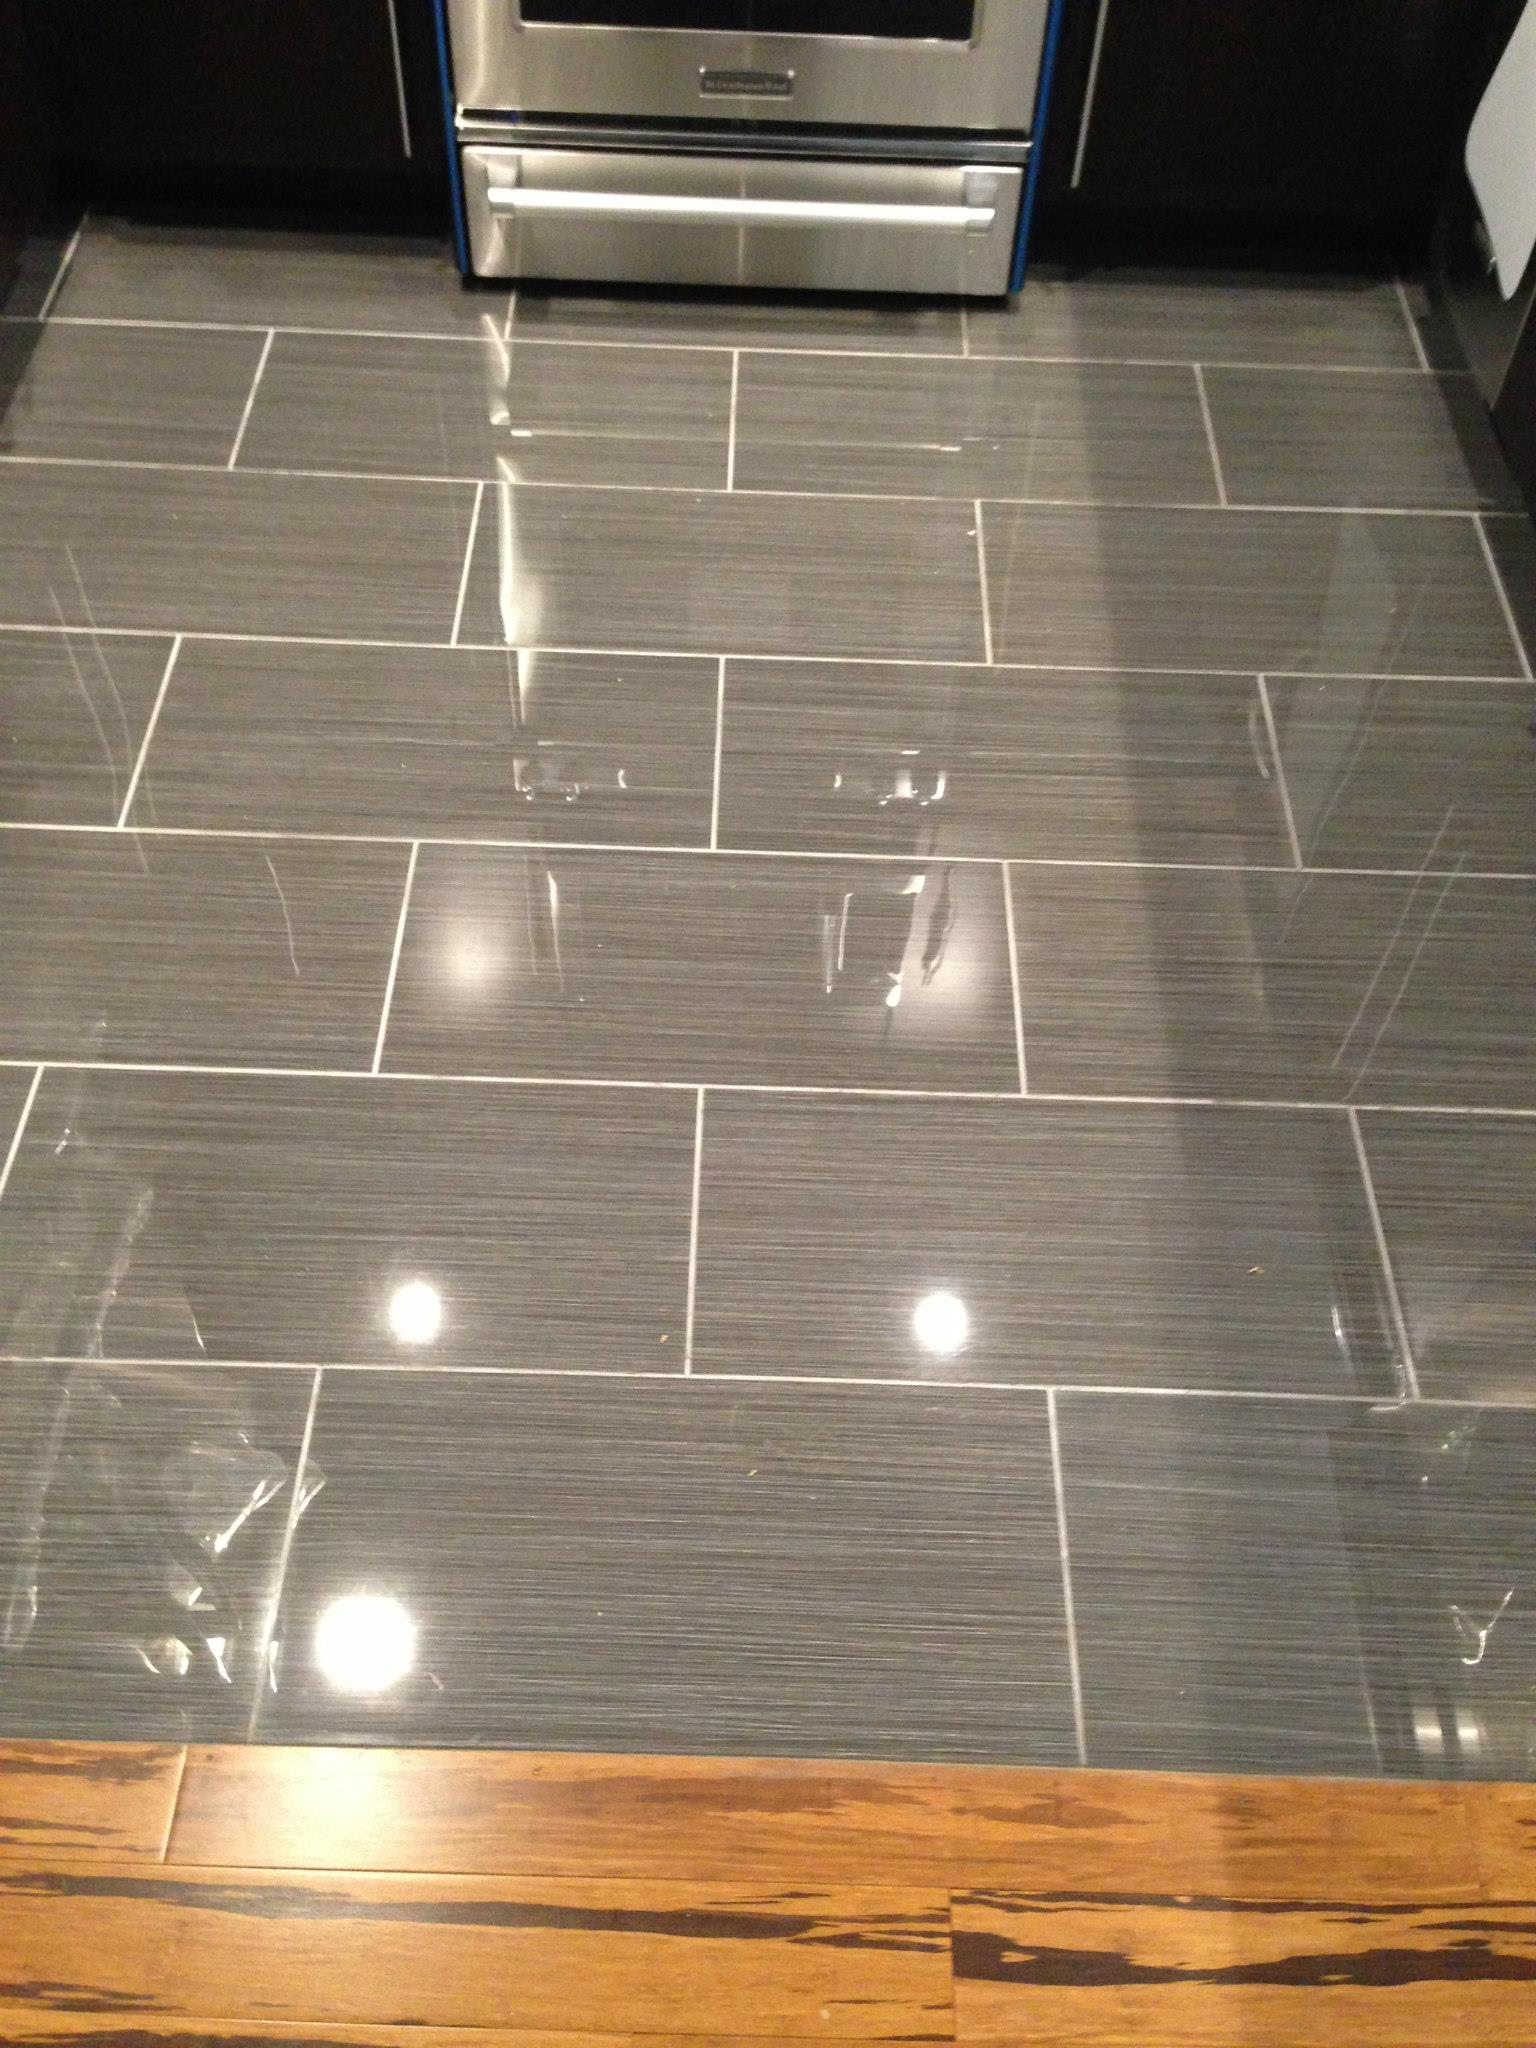 12 x 24 Porcelain Tile